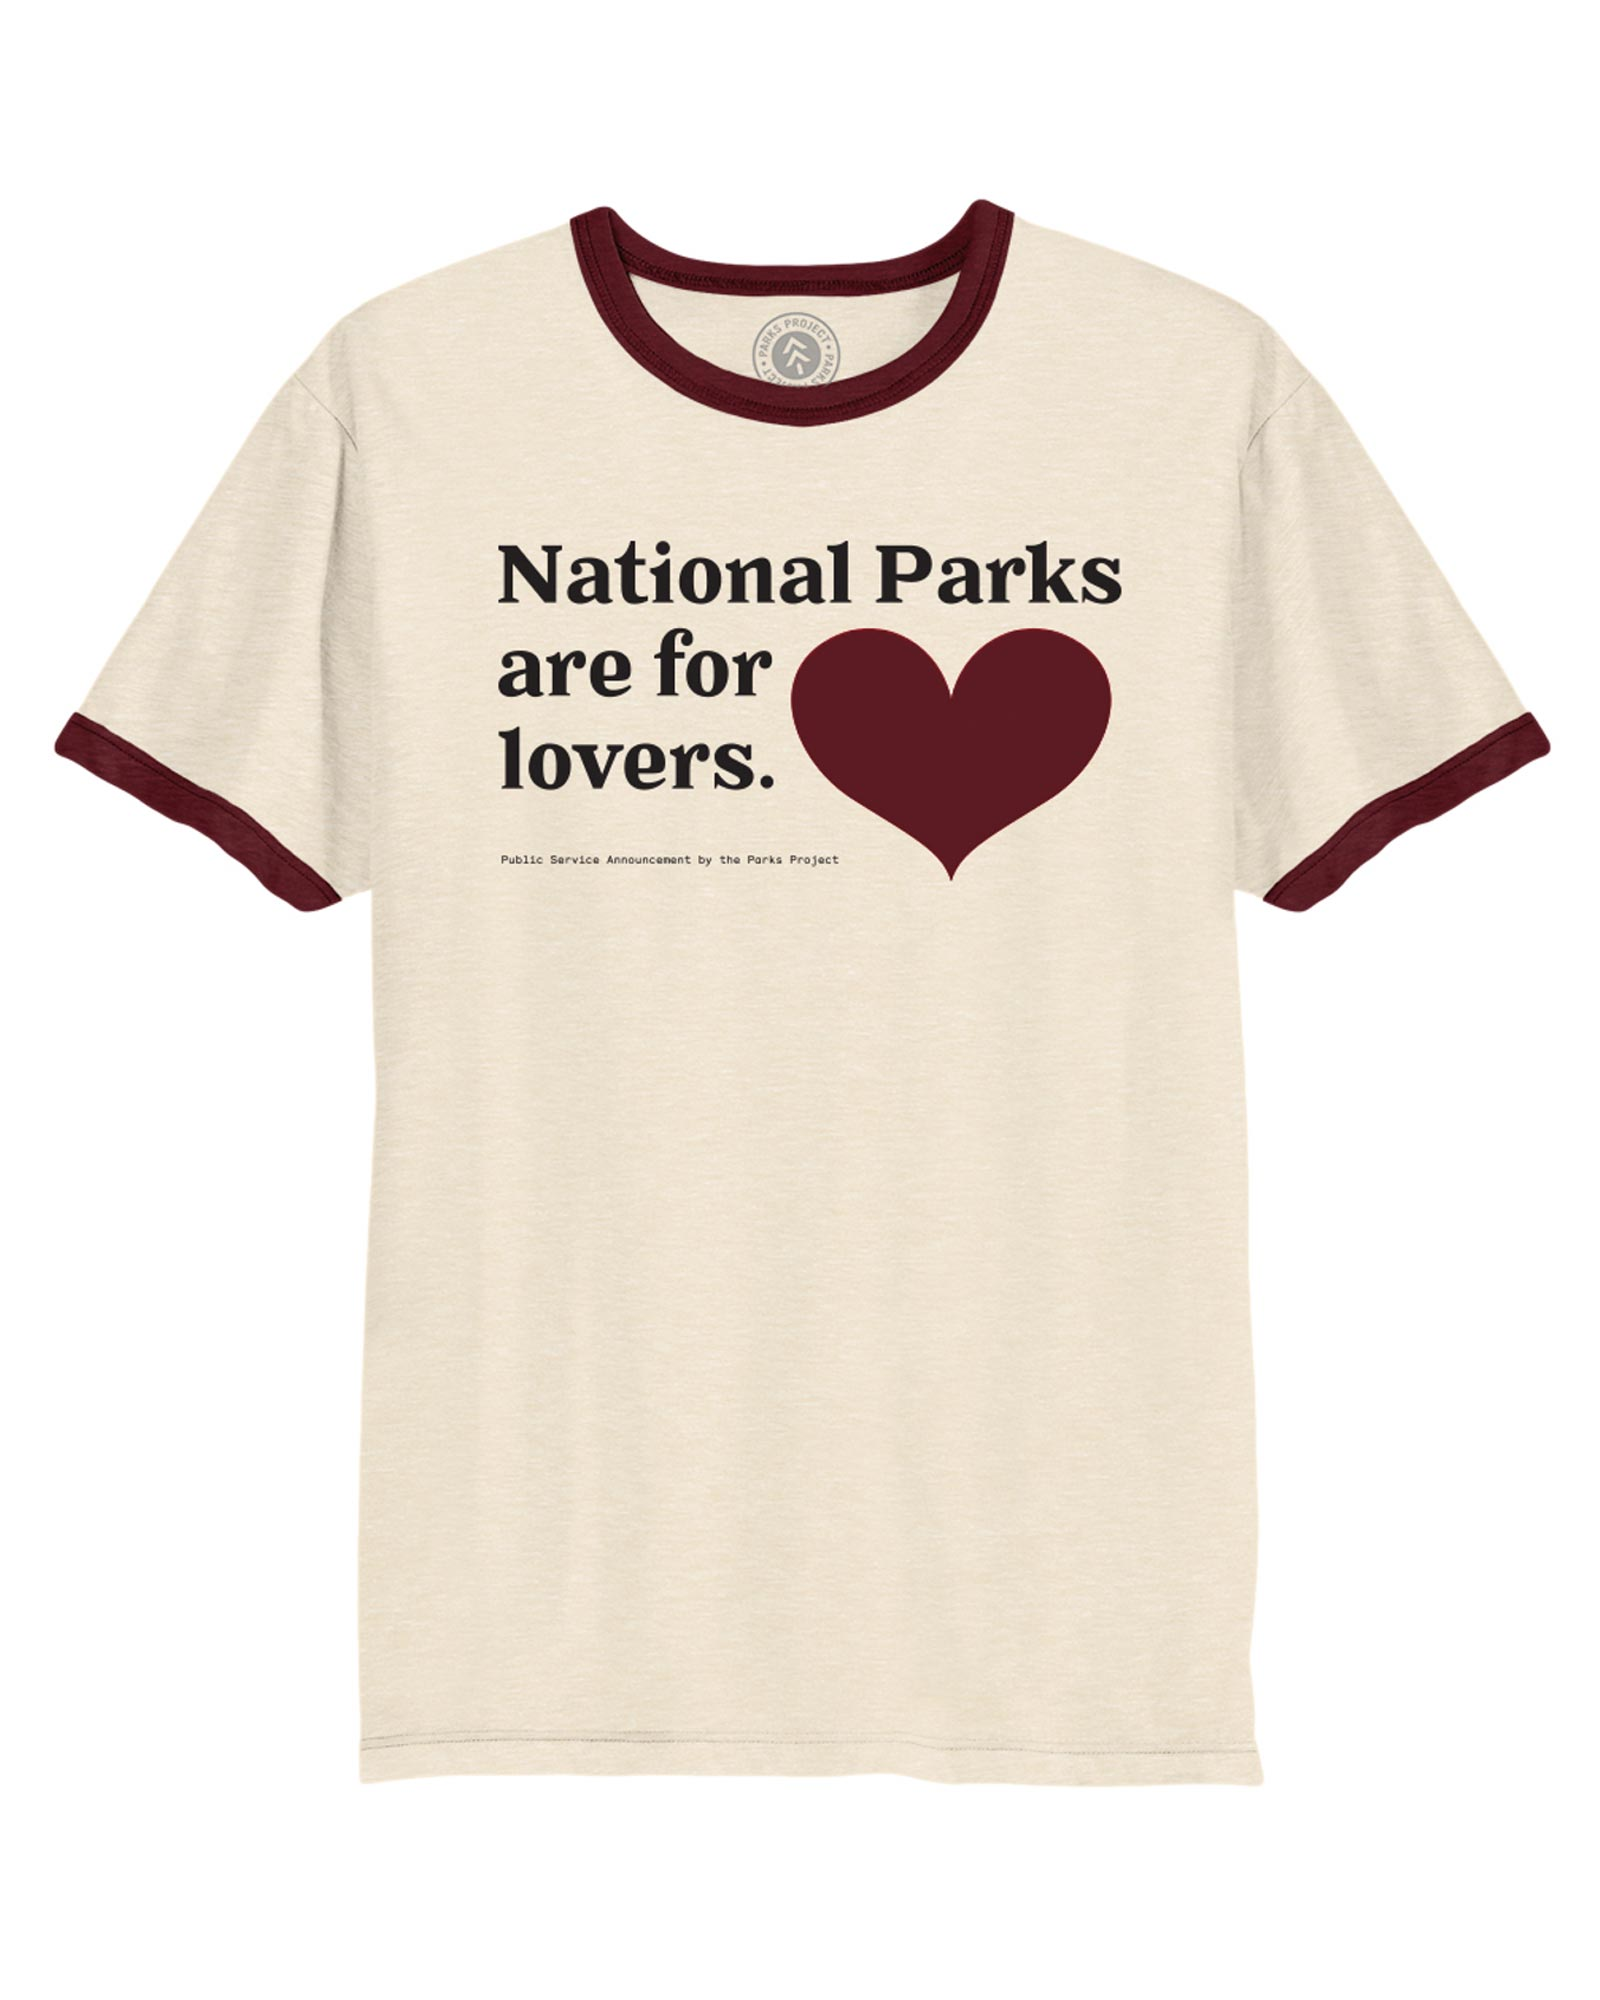 National Parks are for Lovers